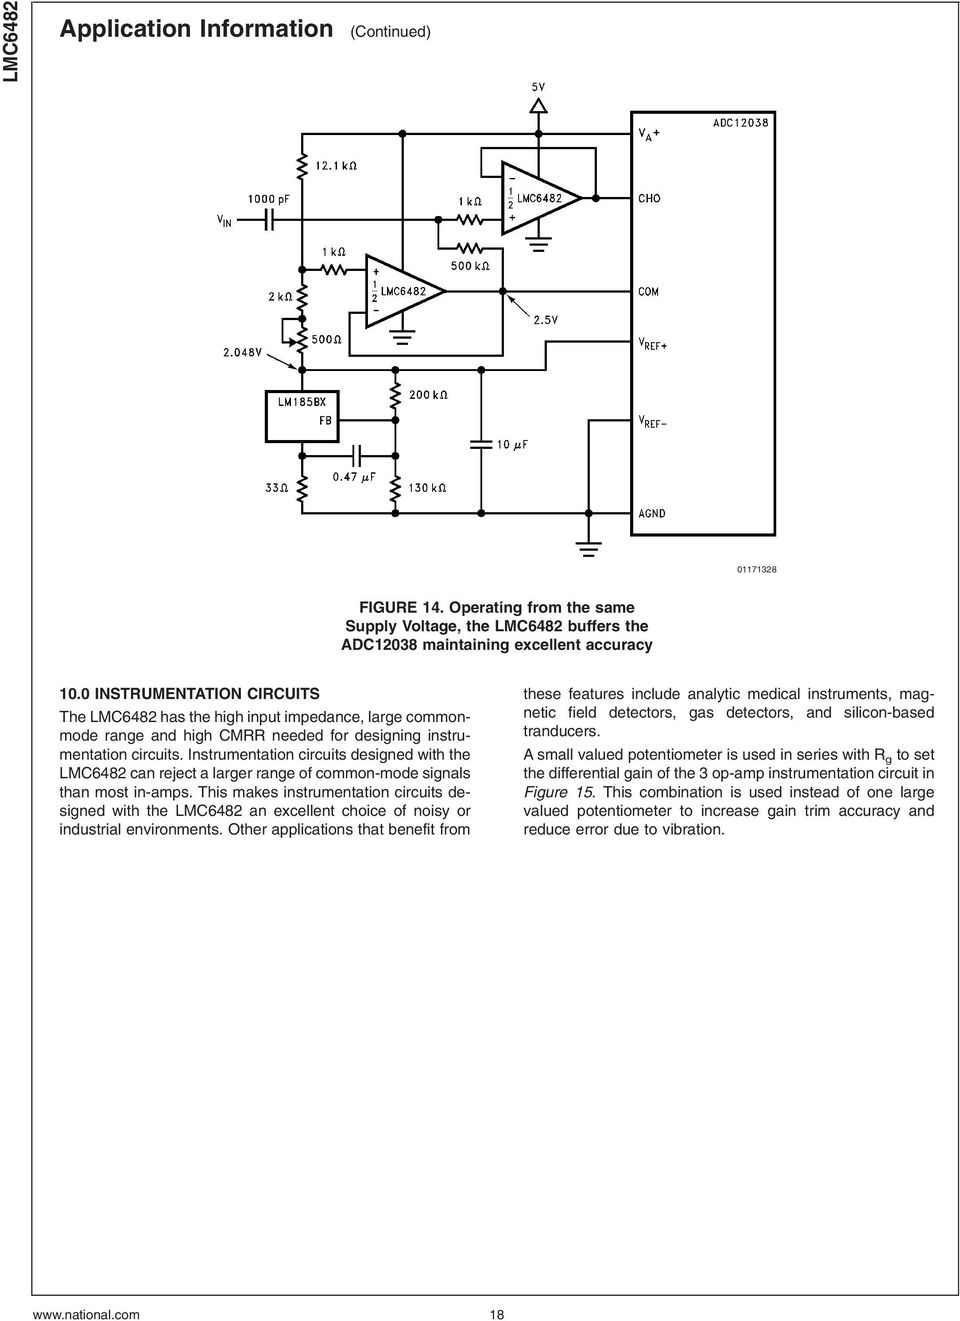 Instrumentation circuits designed with the LMC6482 can reject a larger range of common-mode signals than most in-amps.